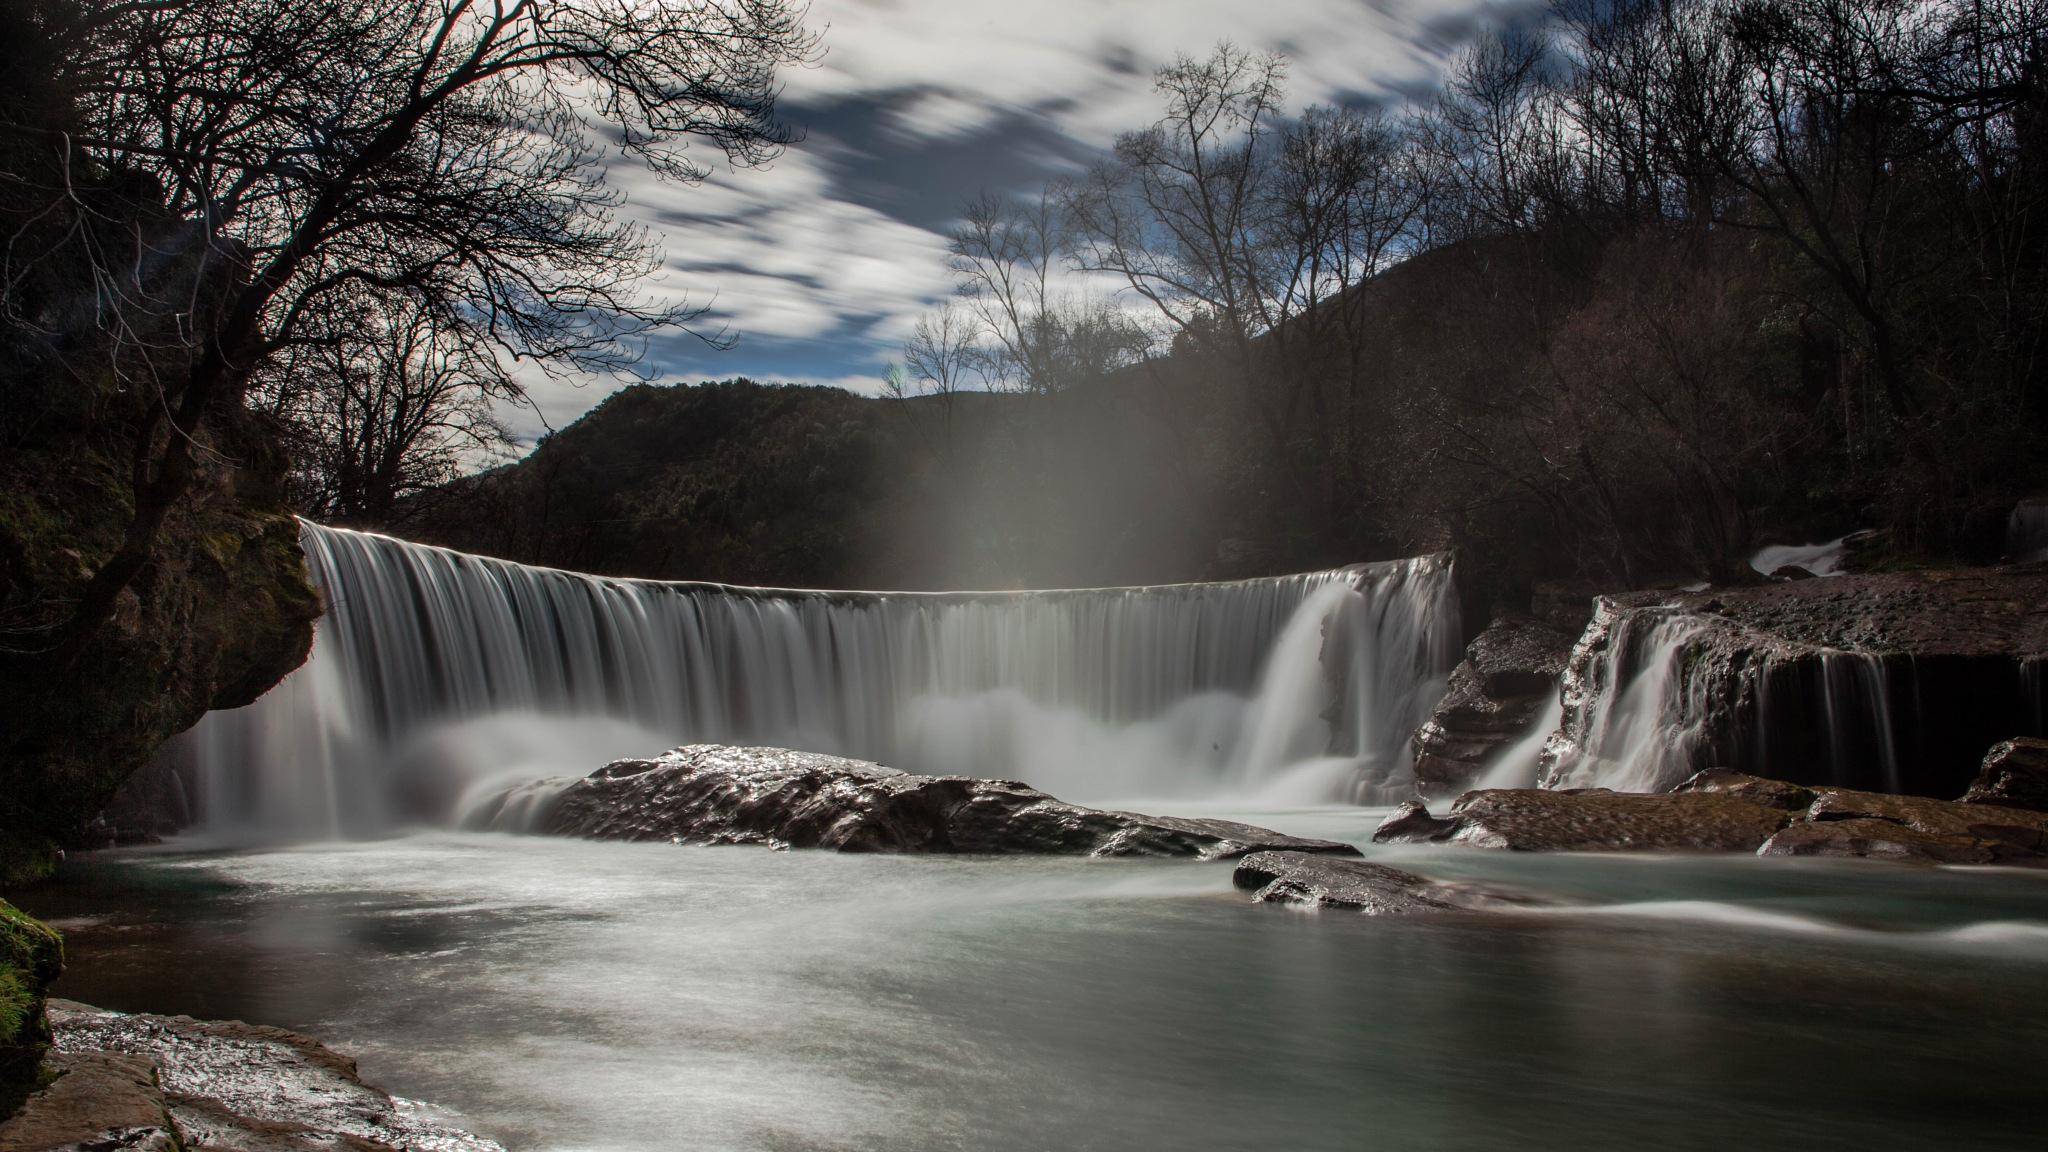 The dream waterfall by JustinGalant